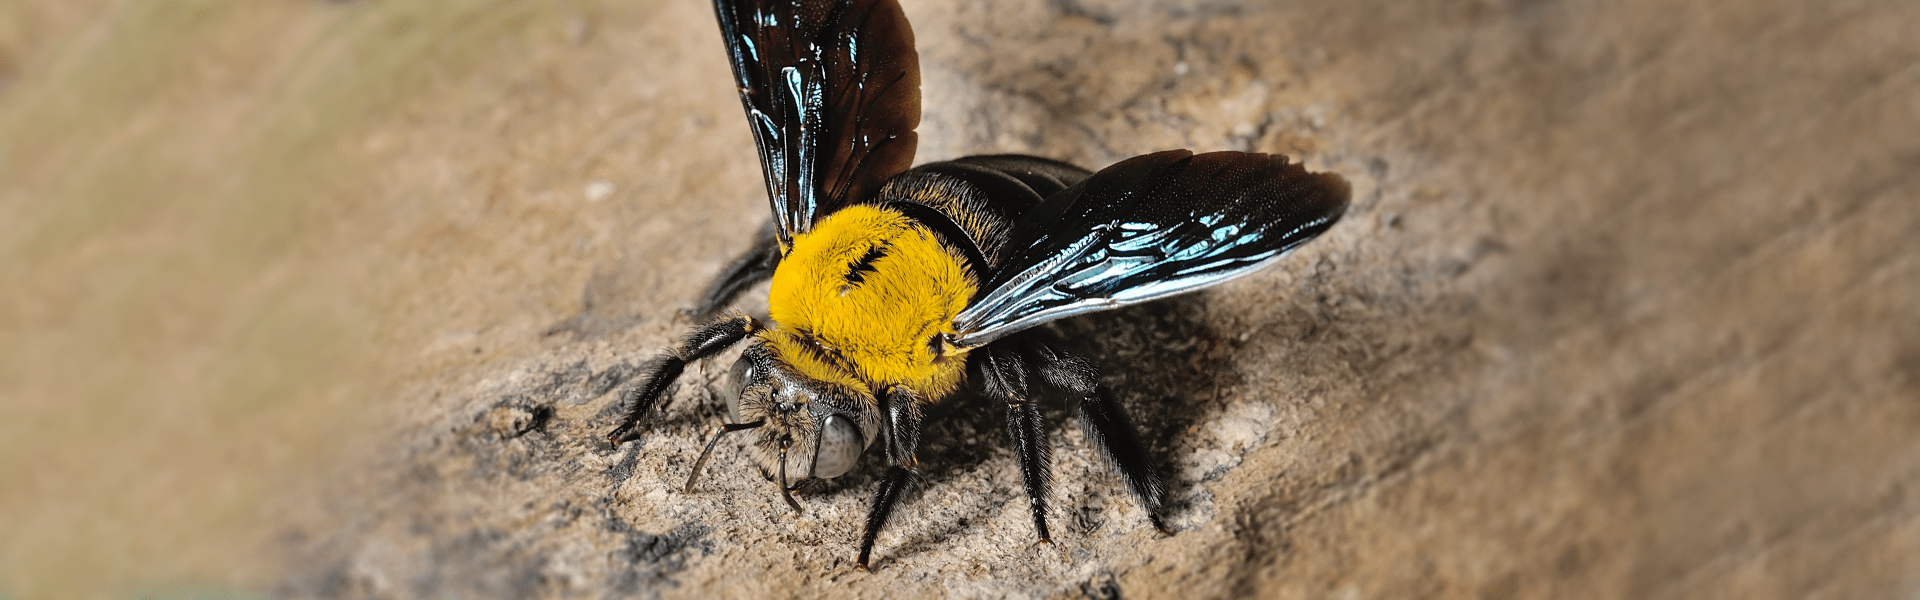 carpenter bee resting on wood surface